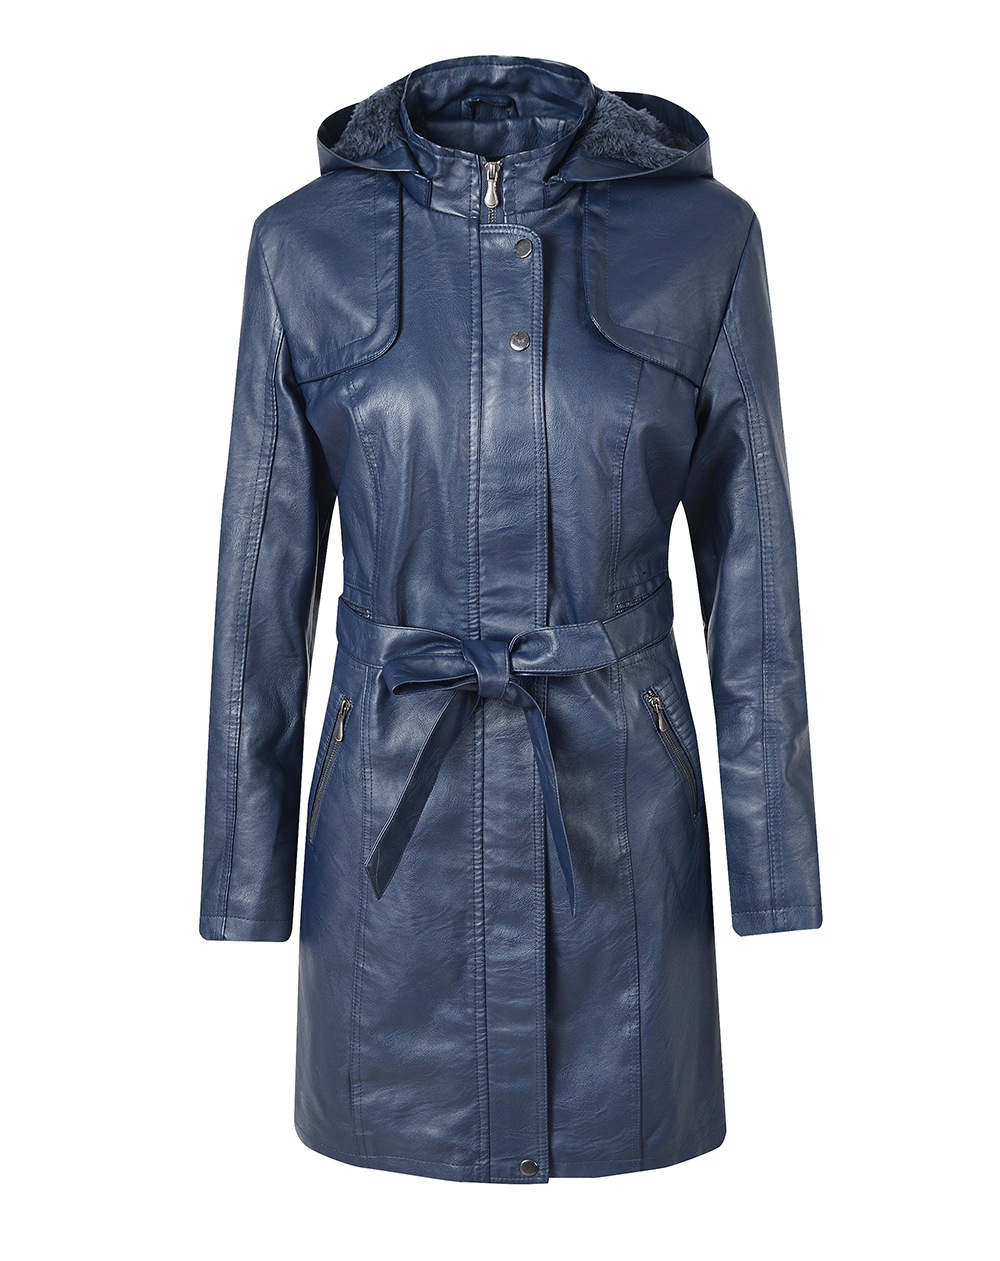 Women's Leather Jacket Coat Female Casual Solid Lapel Zipper Long Sleeve long Coat Autumn And Winter Fashion Warm Items 0